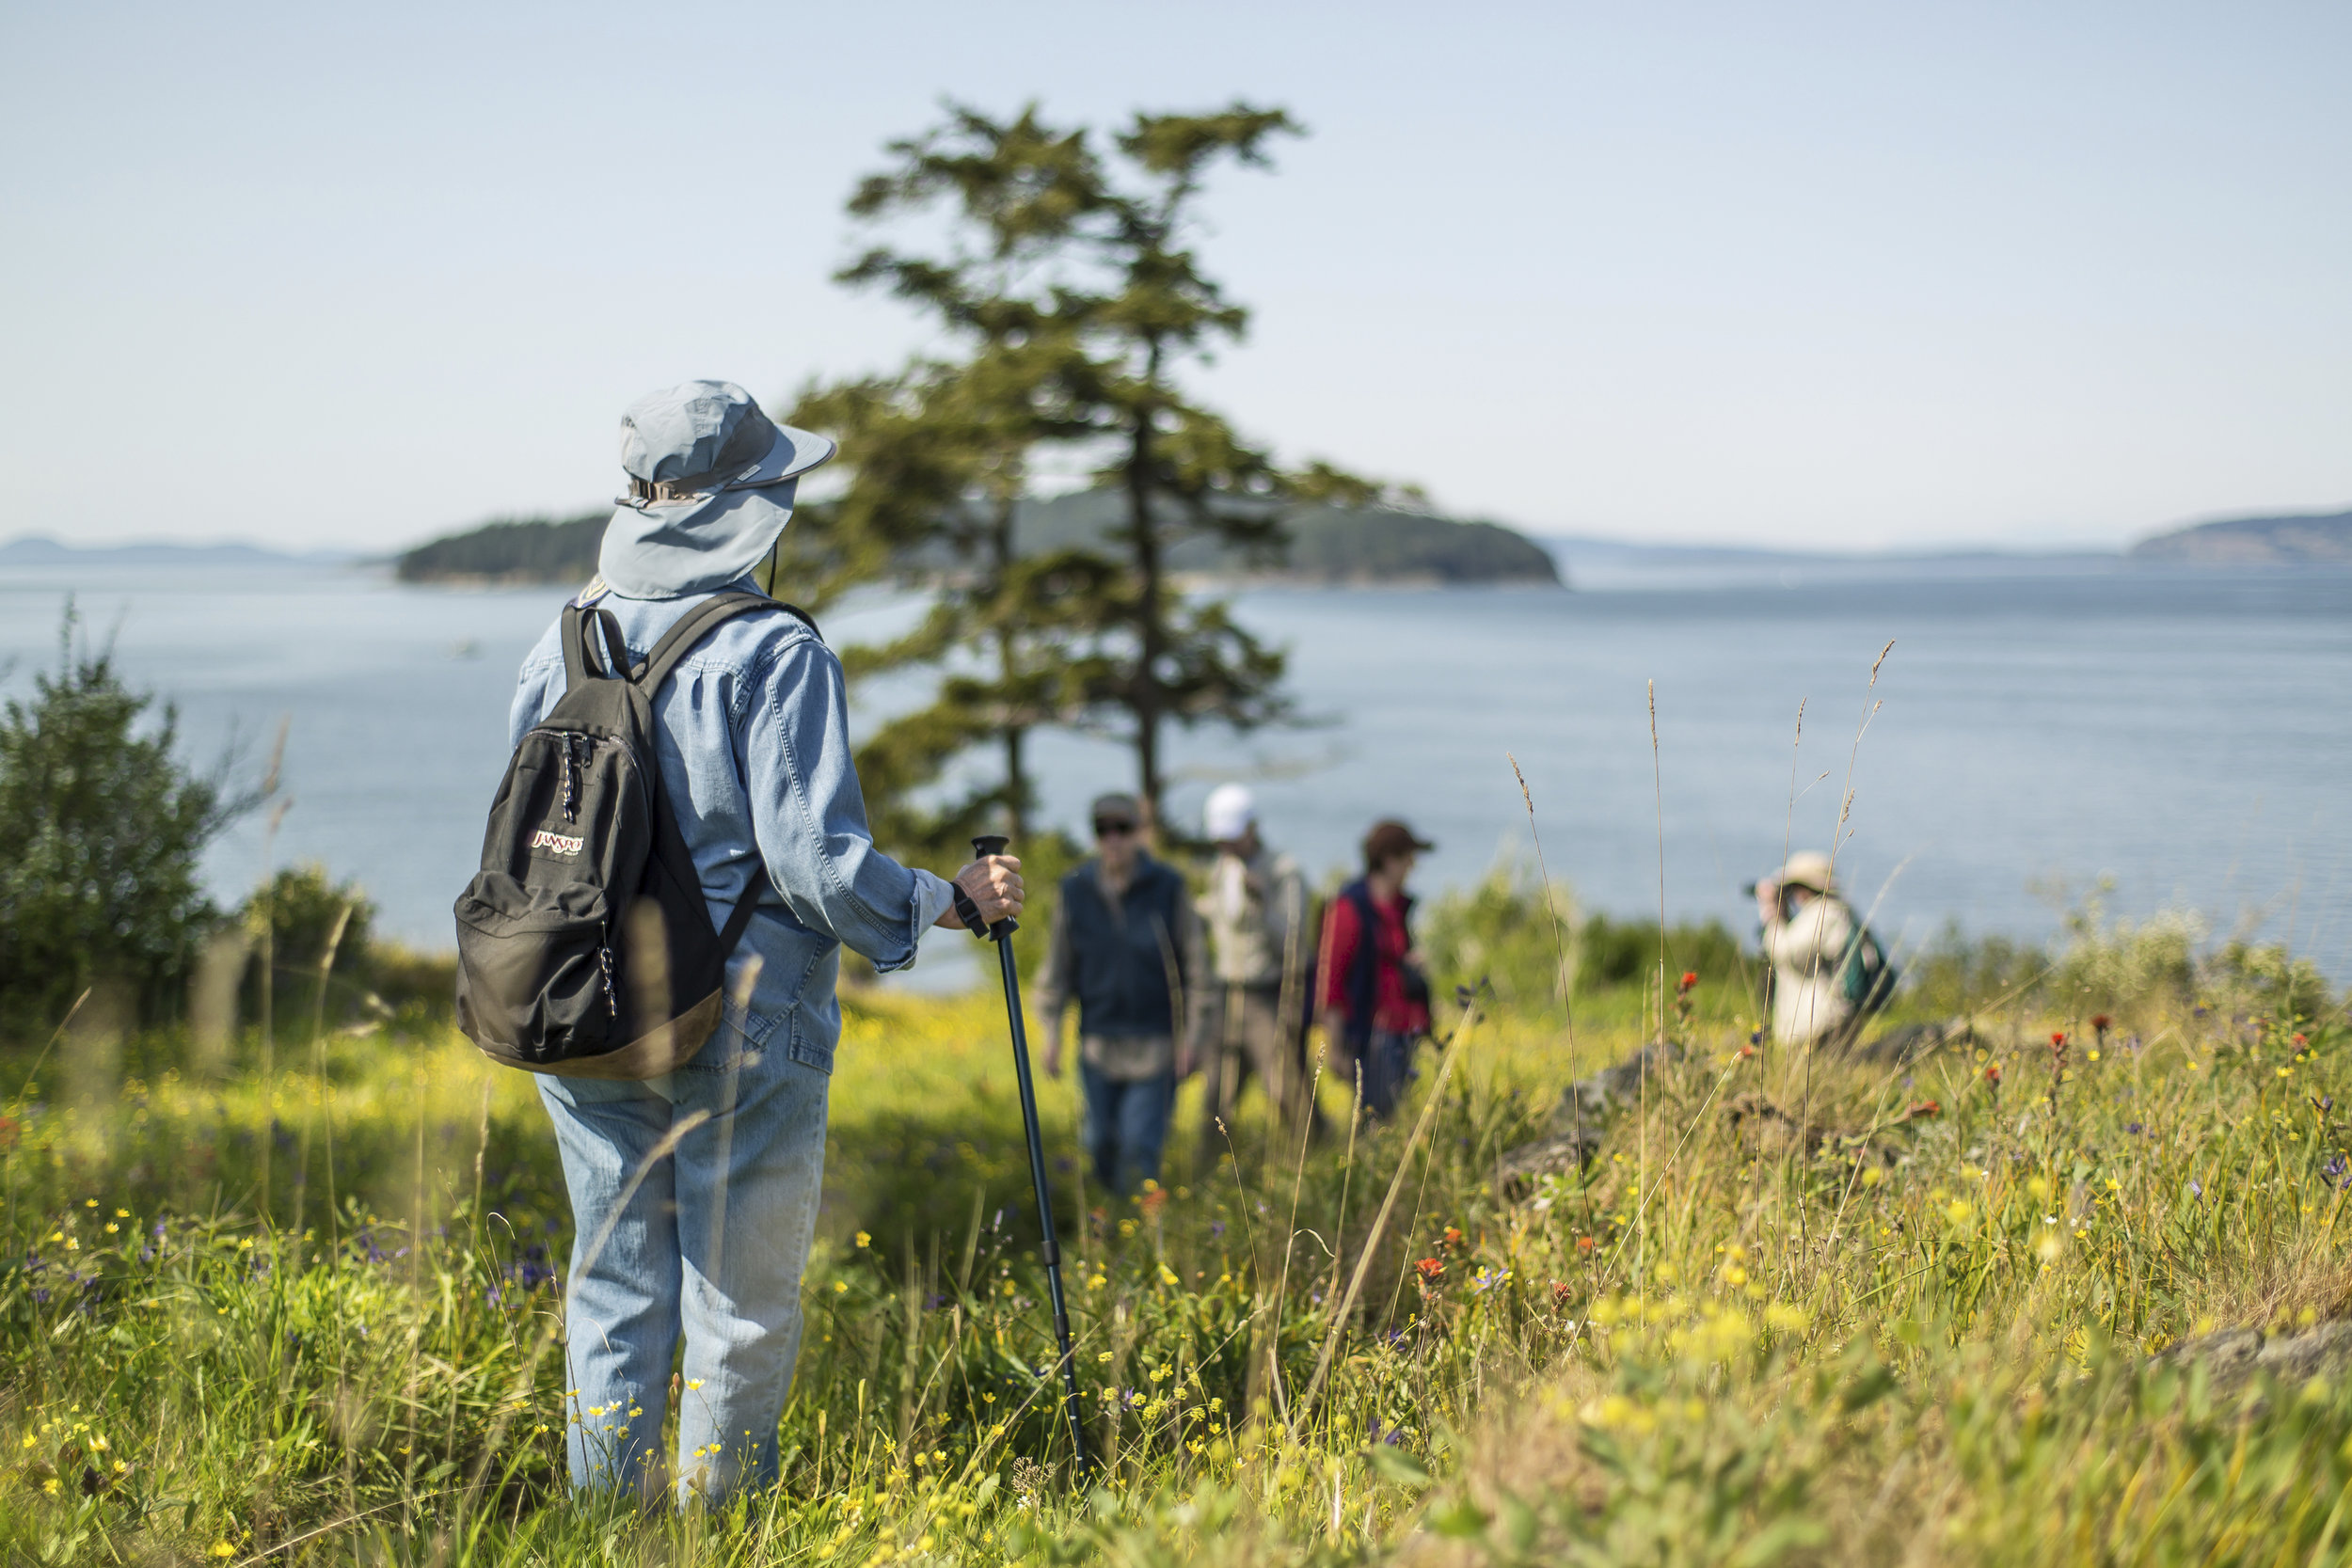 TNC member excursion to Yellow Island Preserve in the San Juan islands of Puget Sound. Photo by Cameron Karsten.